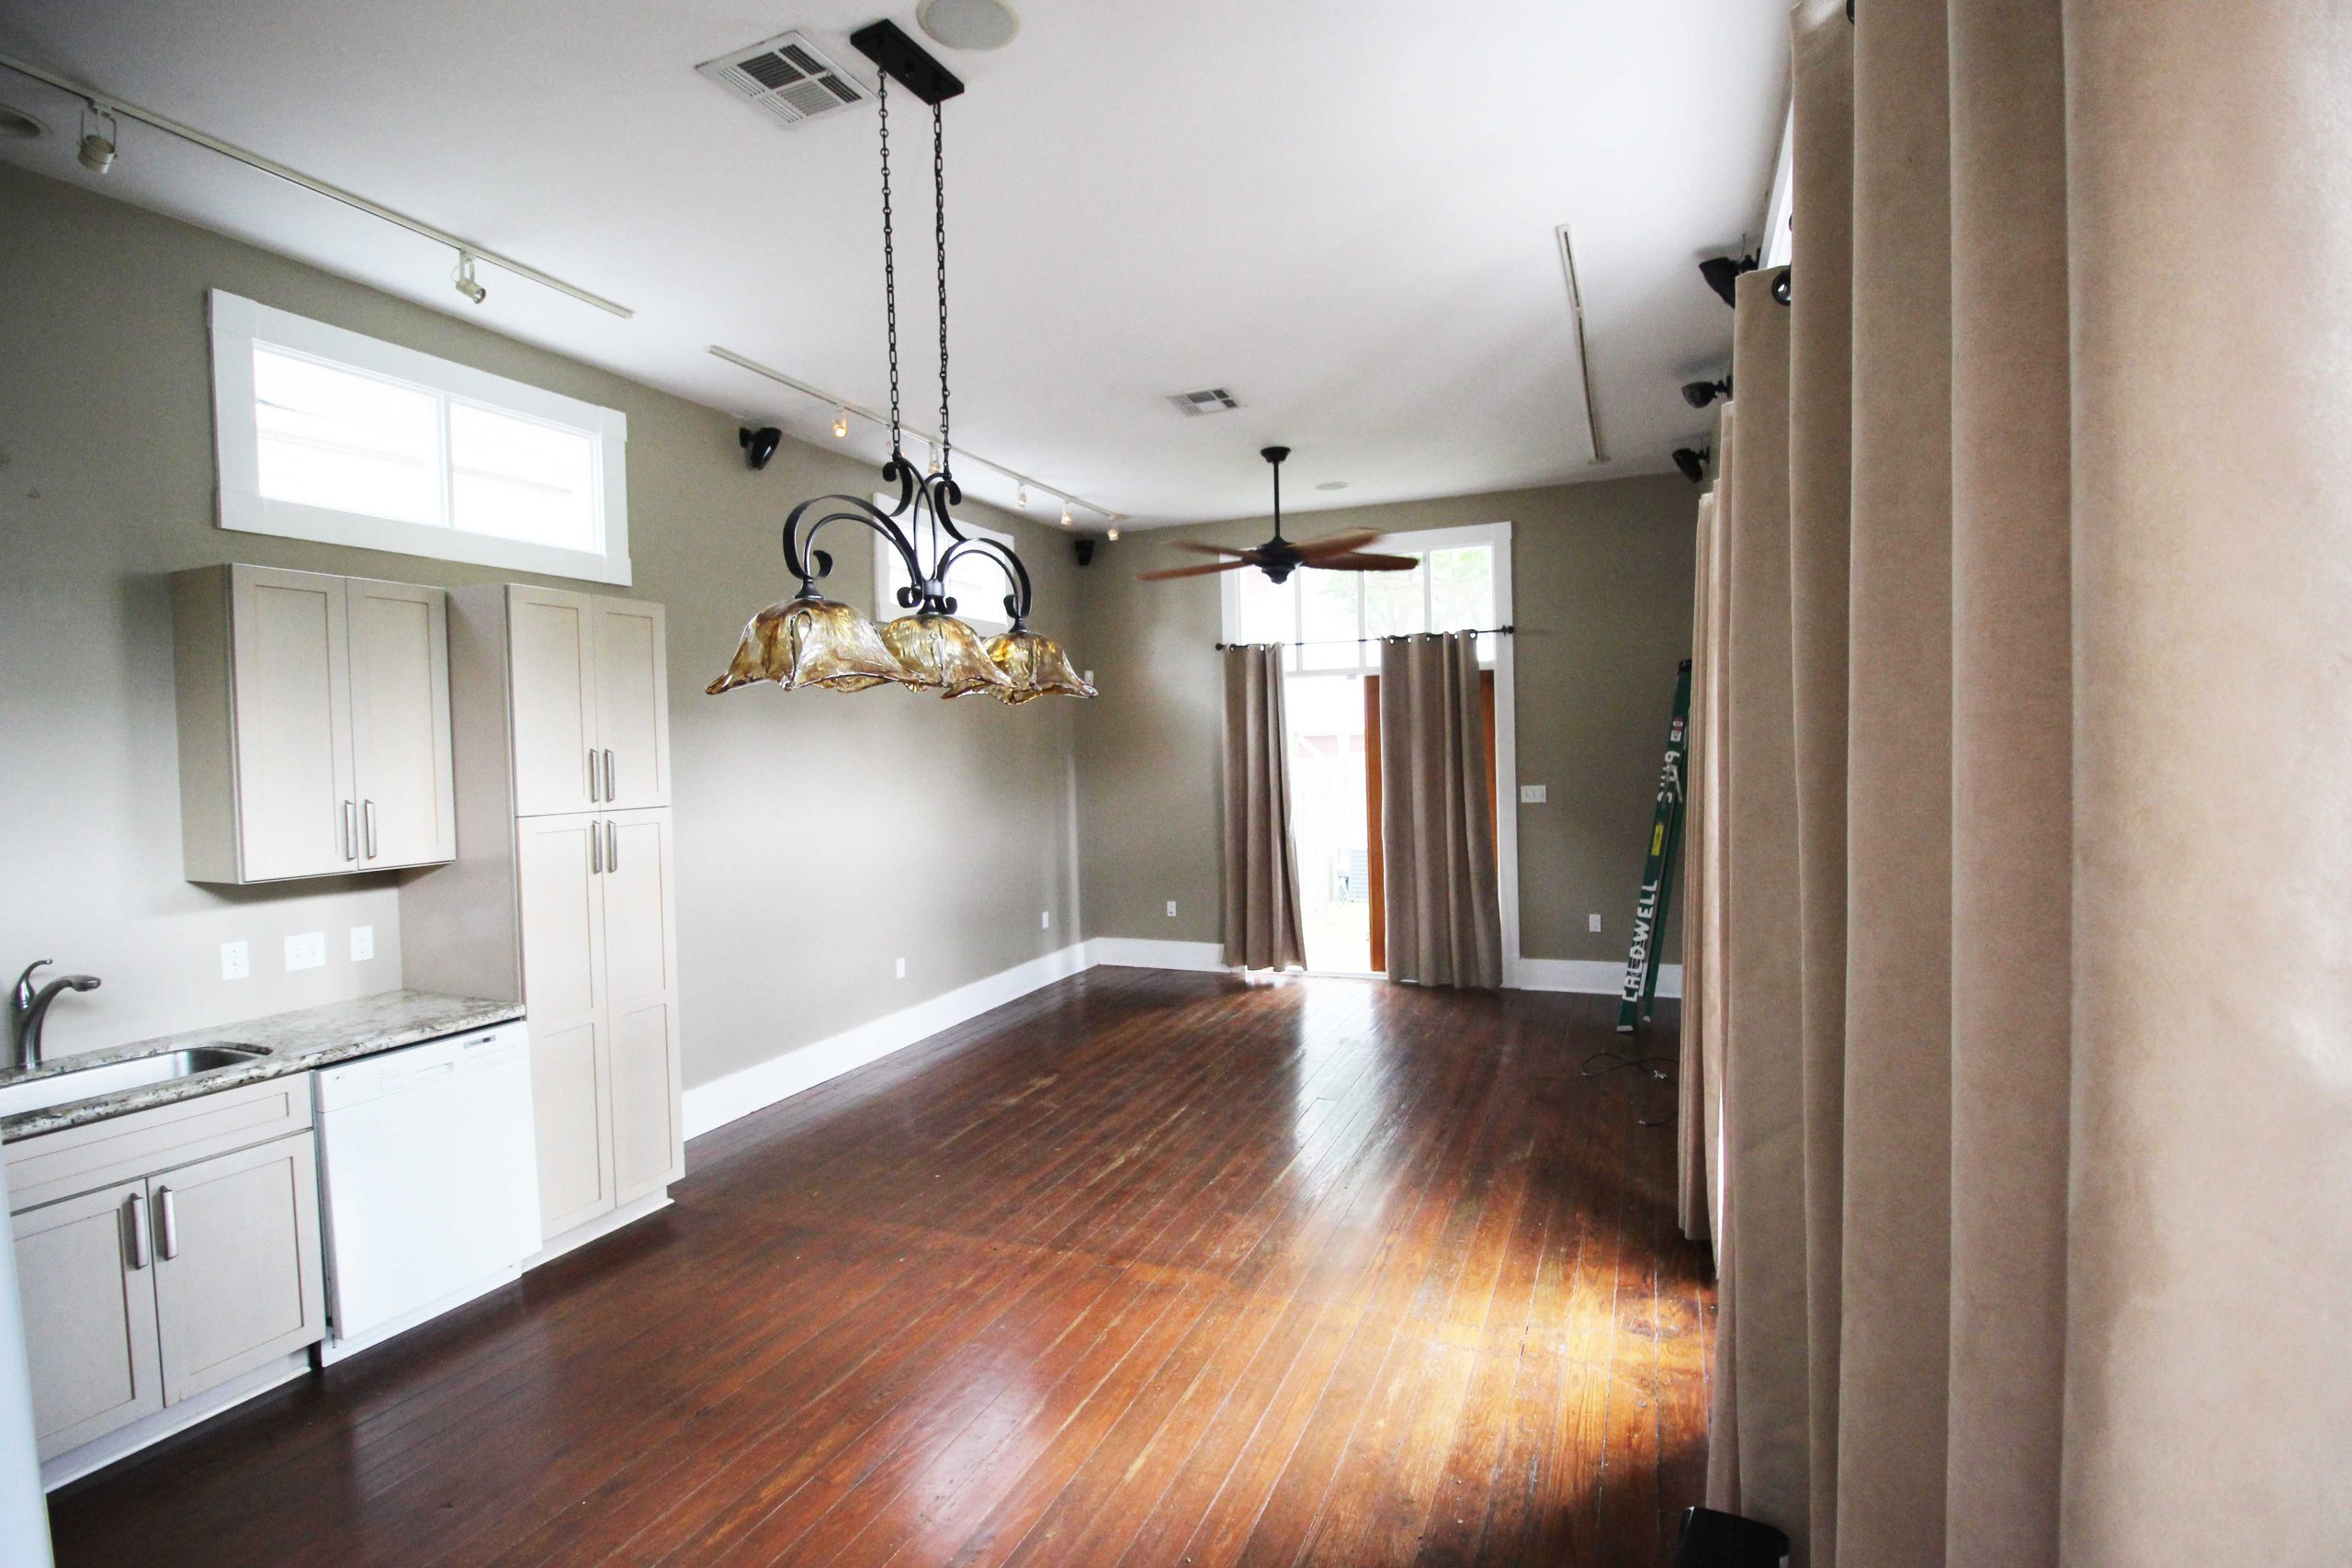 Home Rental Property Management New Orleans